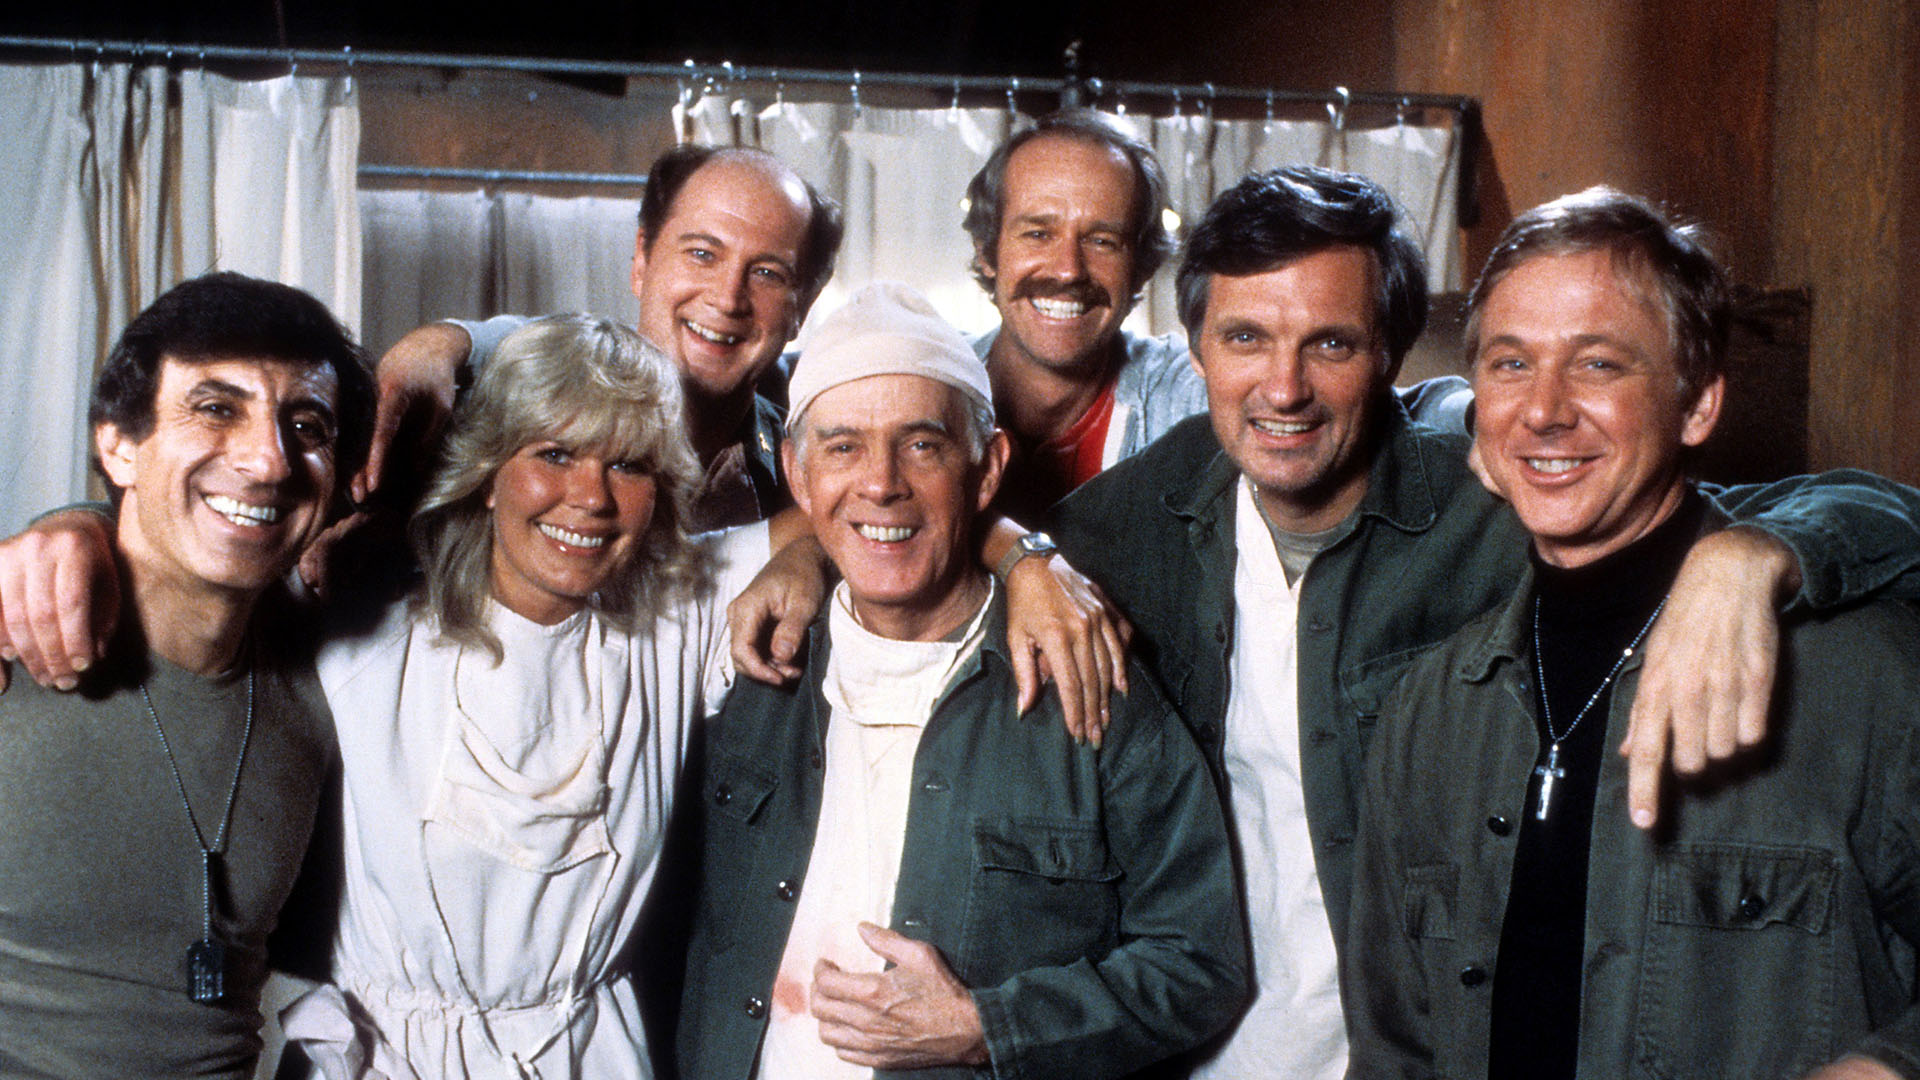 Image: Loretta Swit And Alan Alda William Christopher In 'M*A*S*H'